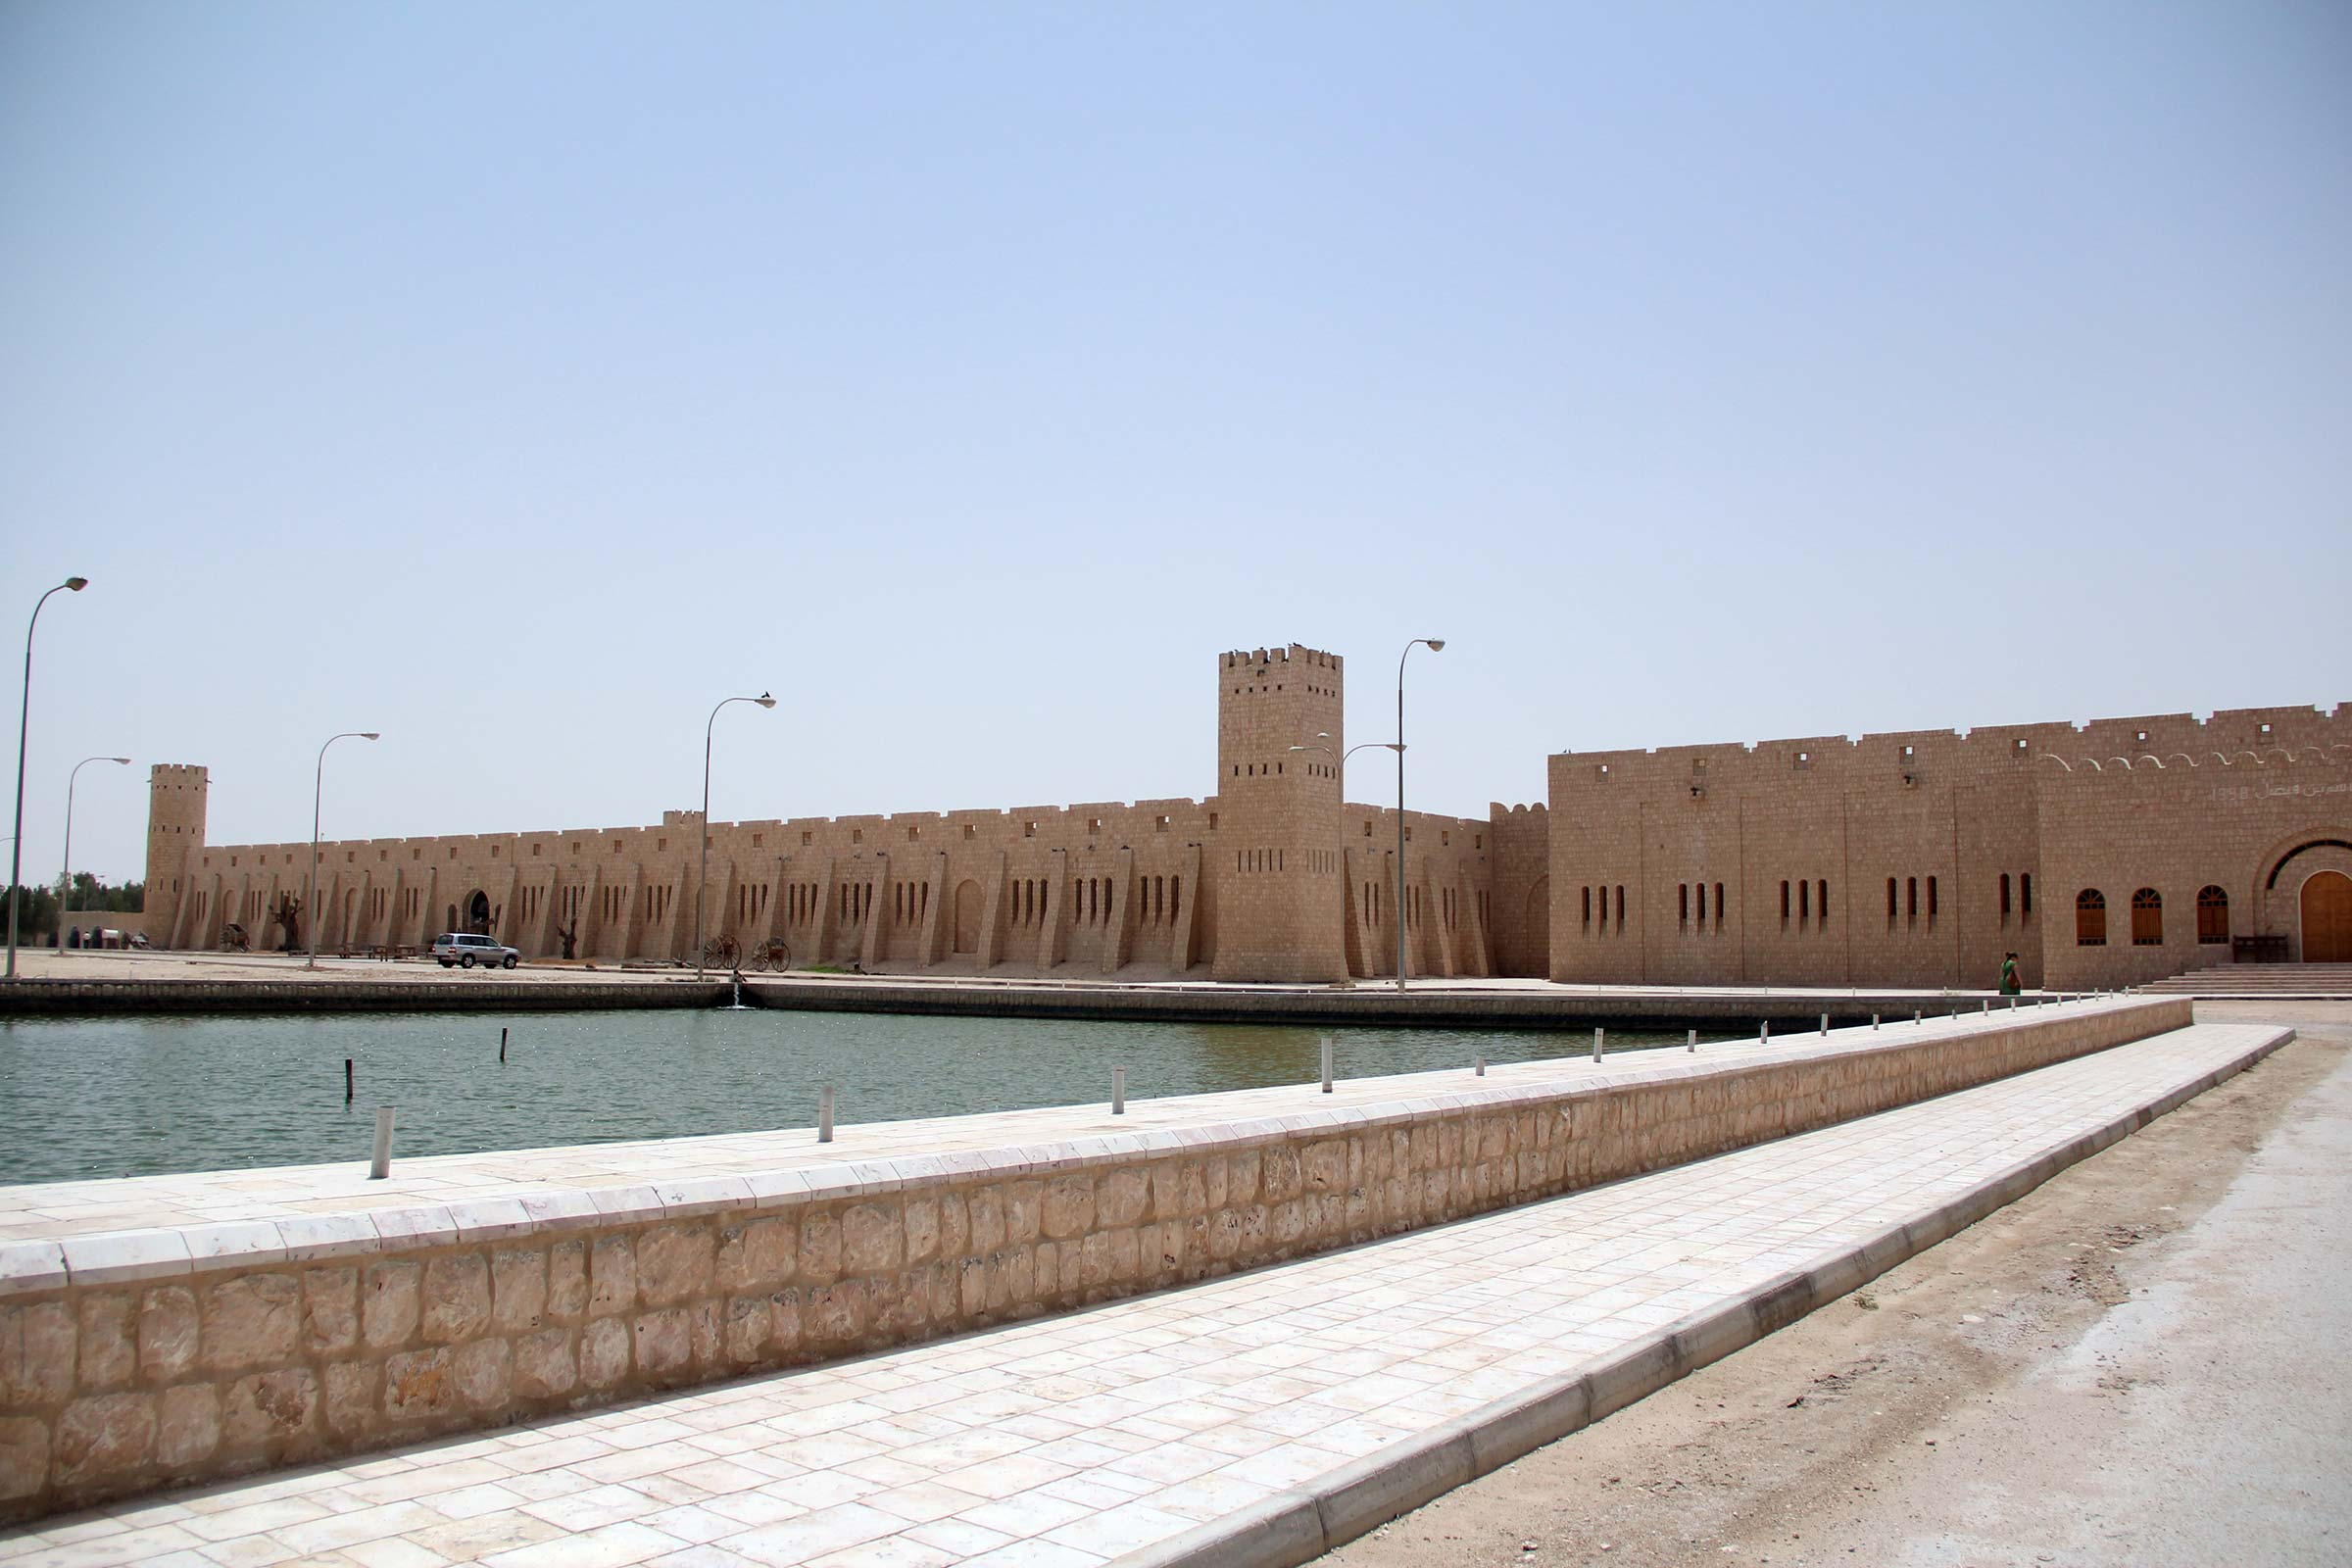 After outcry, Israeli museum calls off sale of Islamic art